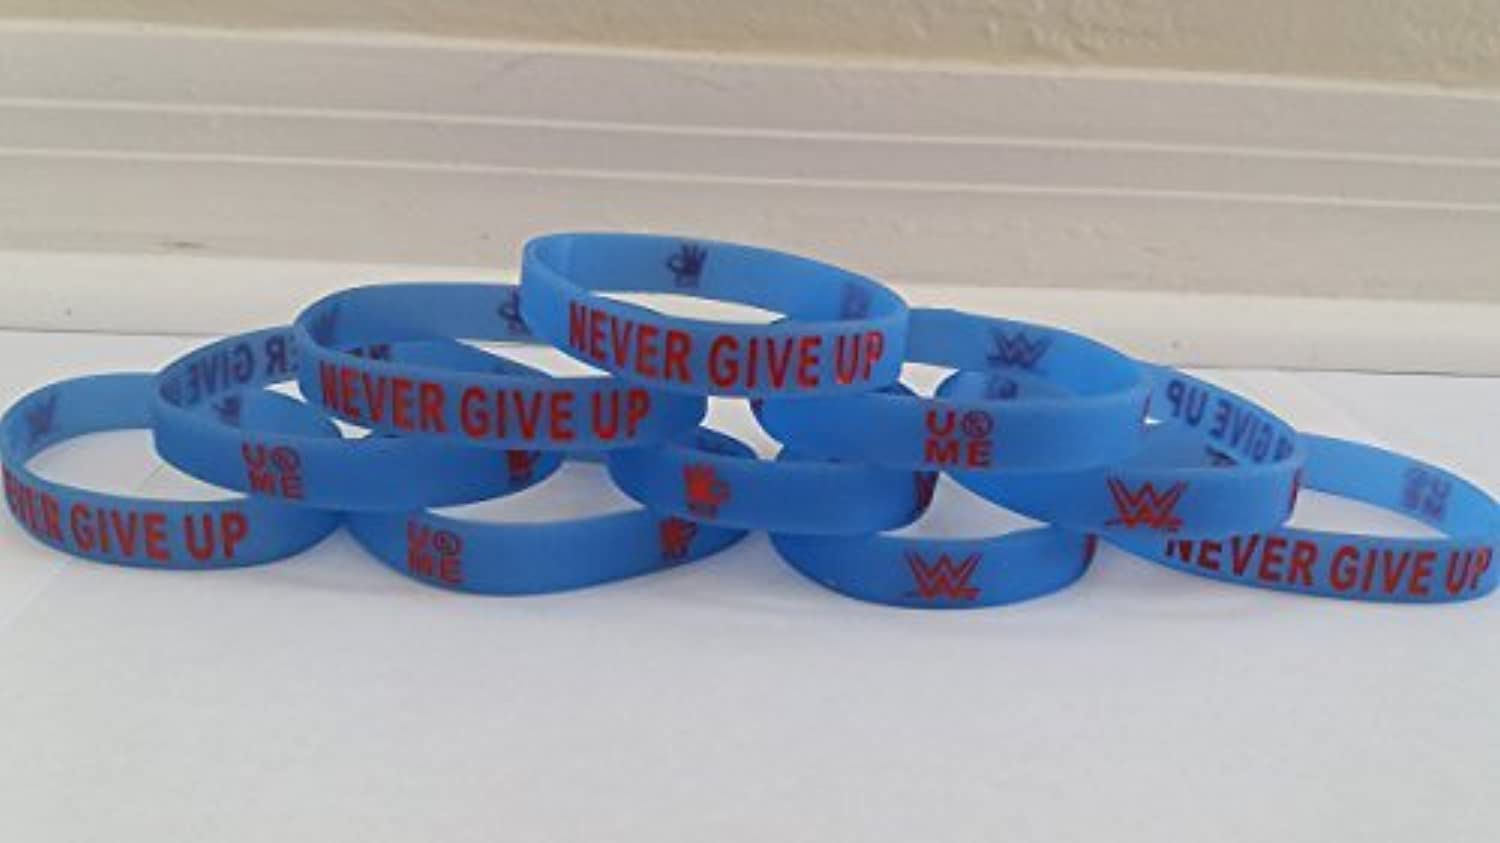 WWE - Glow in the Dark - JOHN CENA  NEVER GIVE UP  bracelets kids party favors (10 pack)